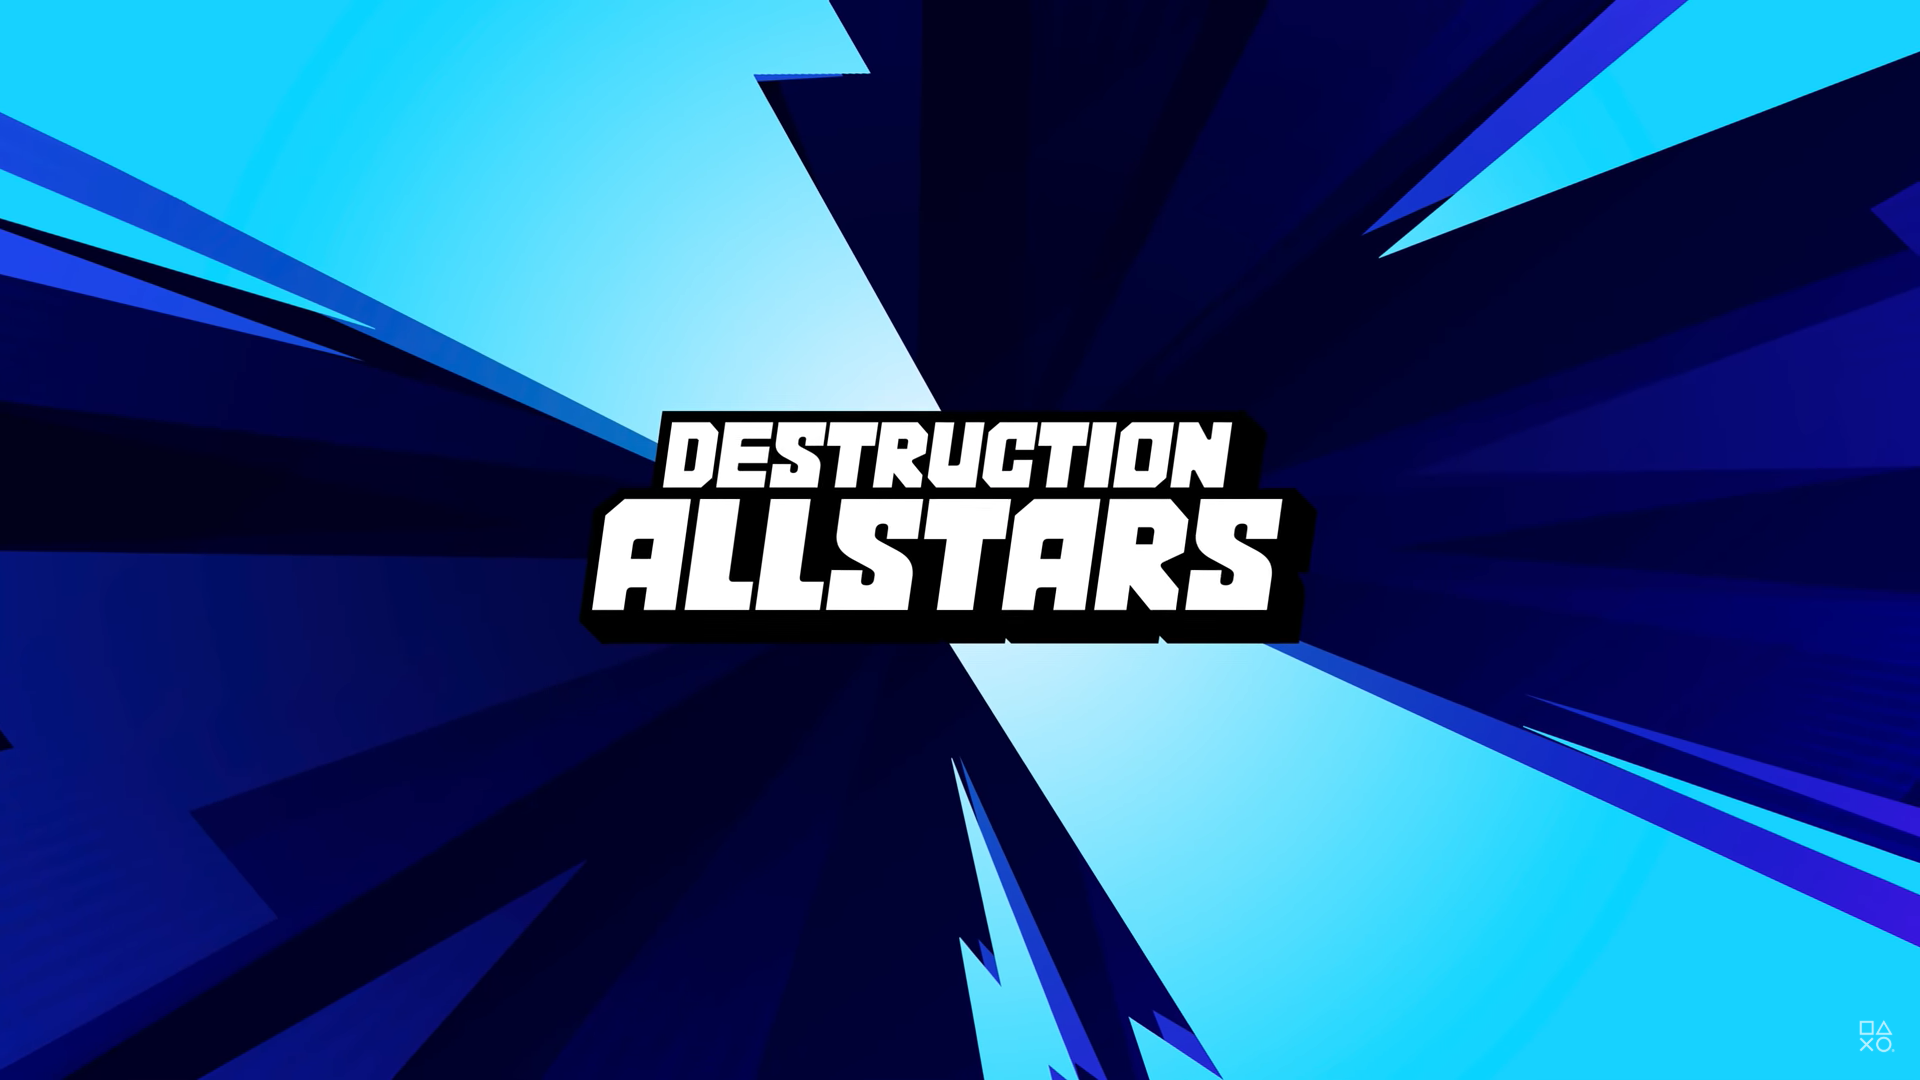 destruction allstars logo wallpaper 72257